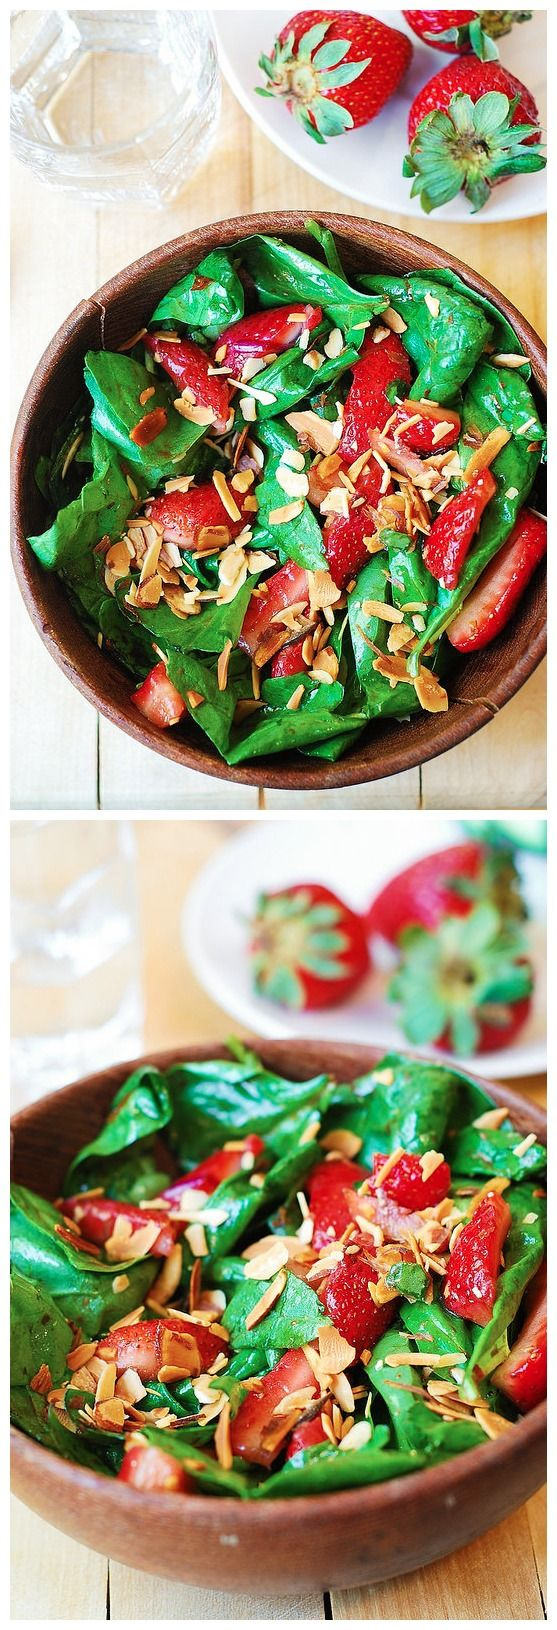 1000+ images about Healthy Eats... on Pinterest | Cauliflower bread ...